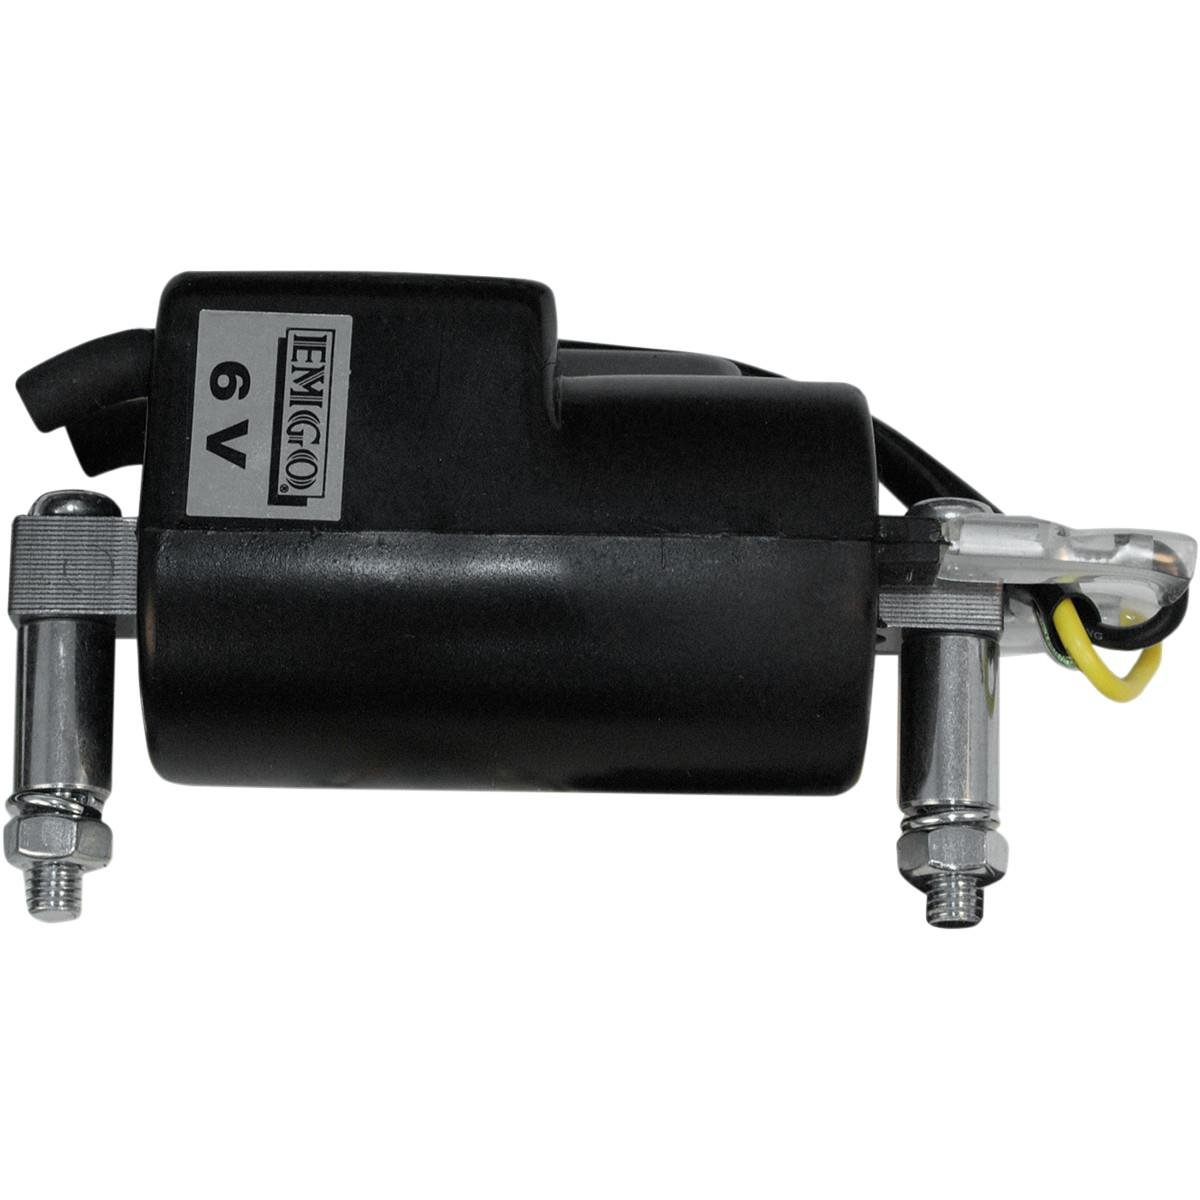 61Q1o9nZ2 L._SL1200_ amazon com emgo universal ignition coil 24 72454 automotive emgo coil wire diagram at webbmarketing.co